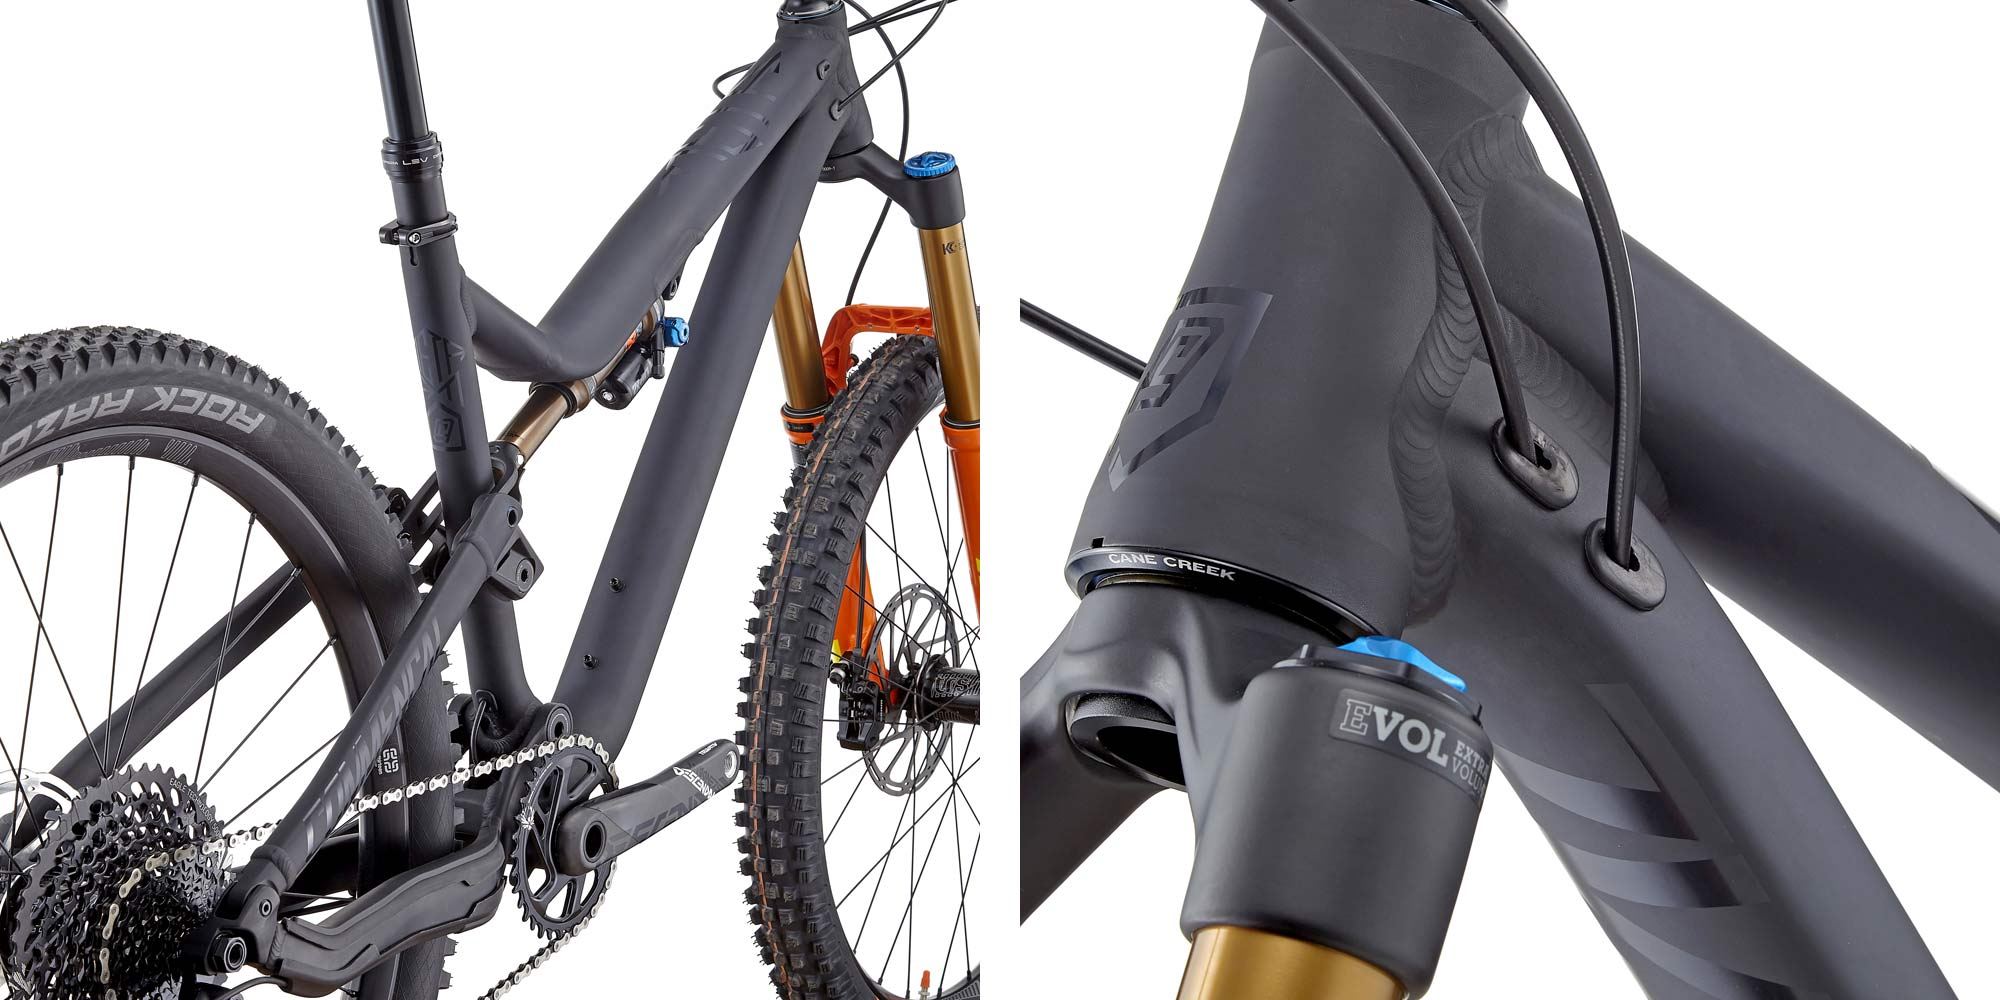 Simple Fox World Cup 2018 - Commencal-Meta-AM-v42-World-Cup-Fox_limited-edition-160mm-travel-full-suspension-enduro-mountain-bike_details  Snapshot_598533 .jpg